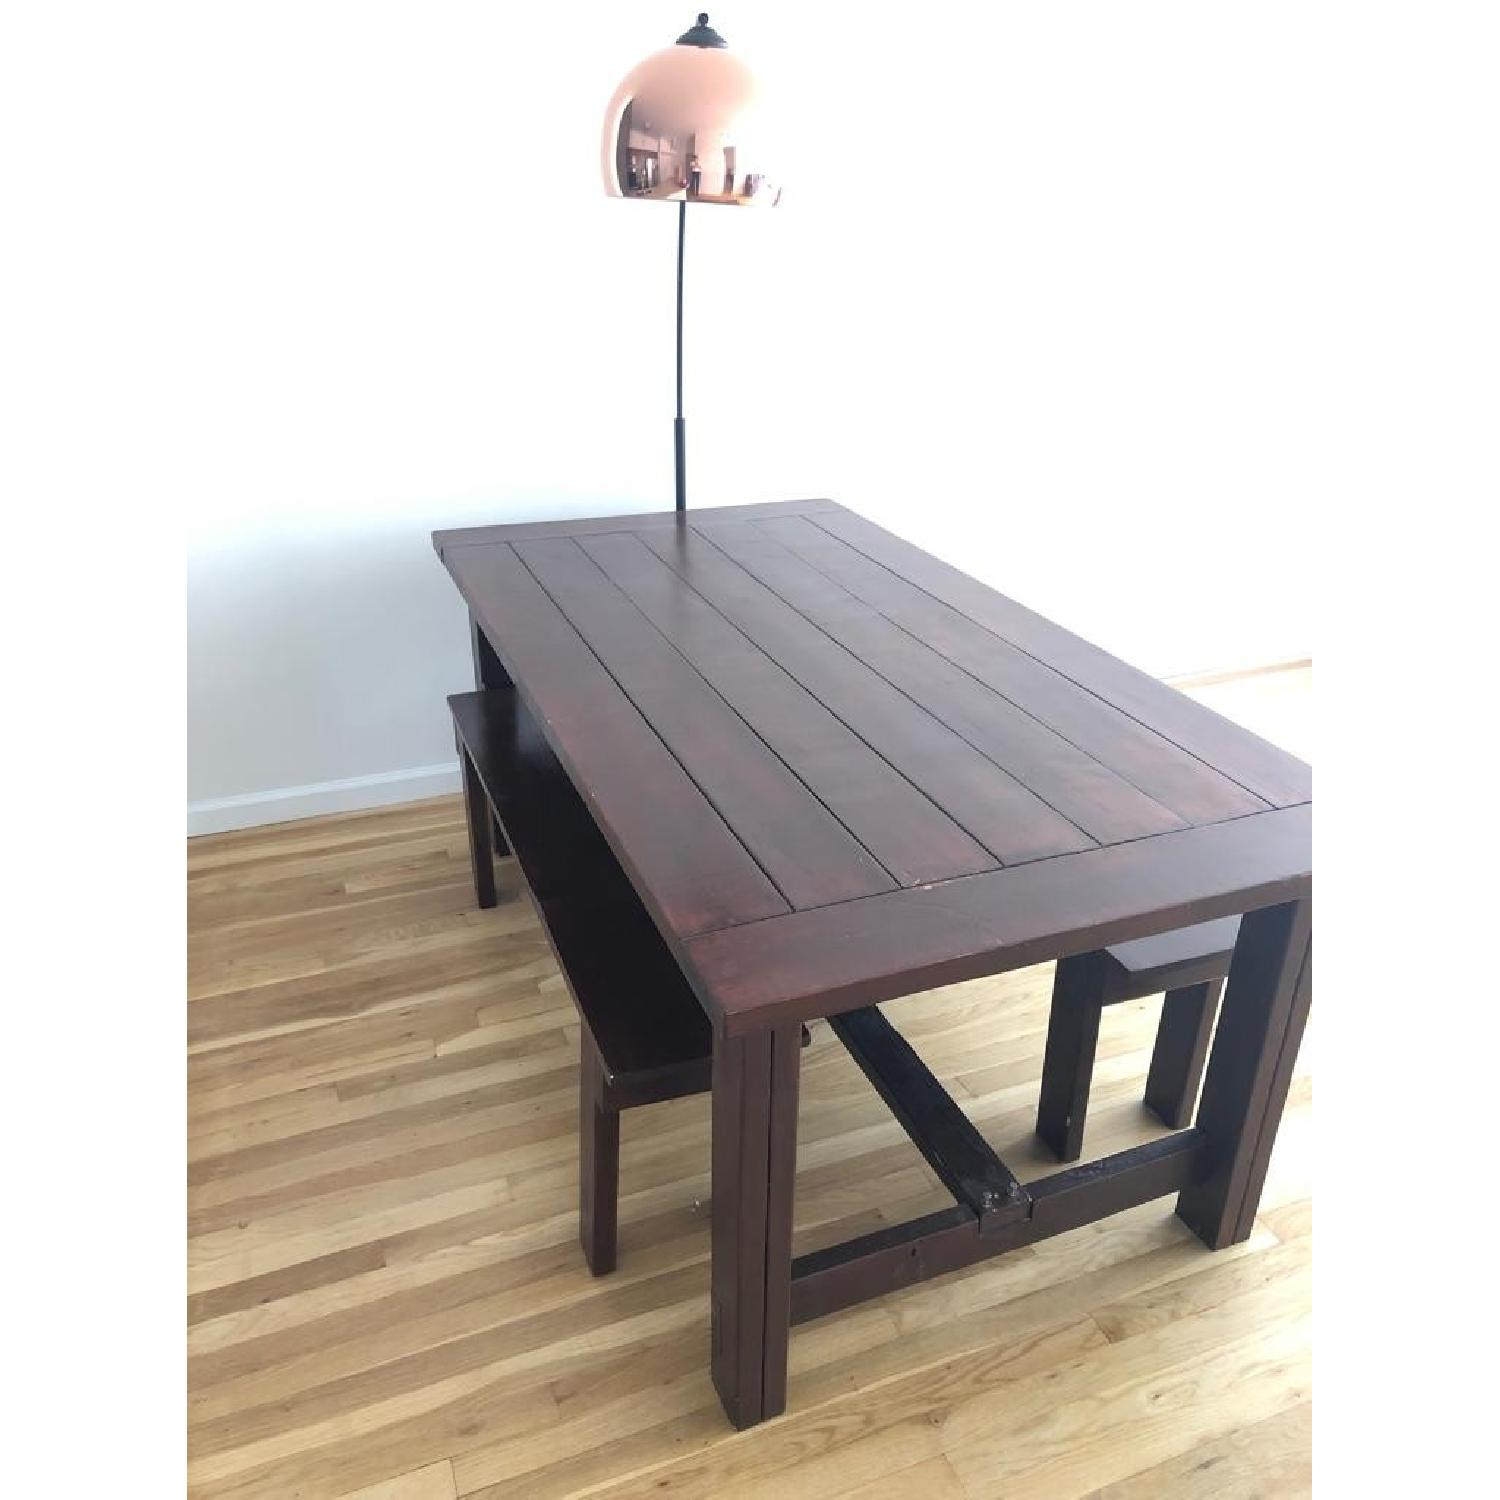 Custom Wood Farmhouse Rustic Dining Table w/ 2 Benches - image-2